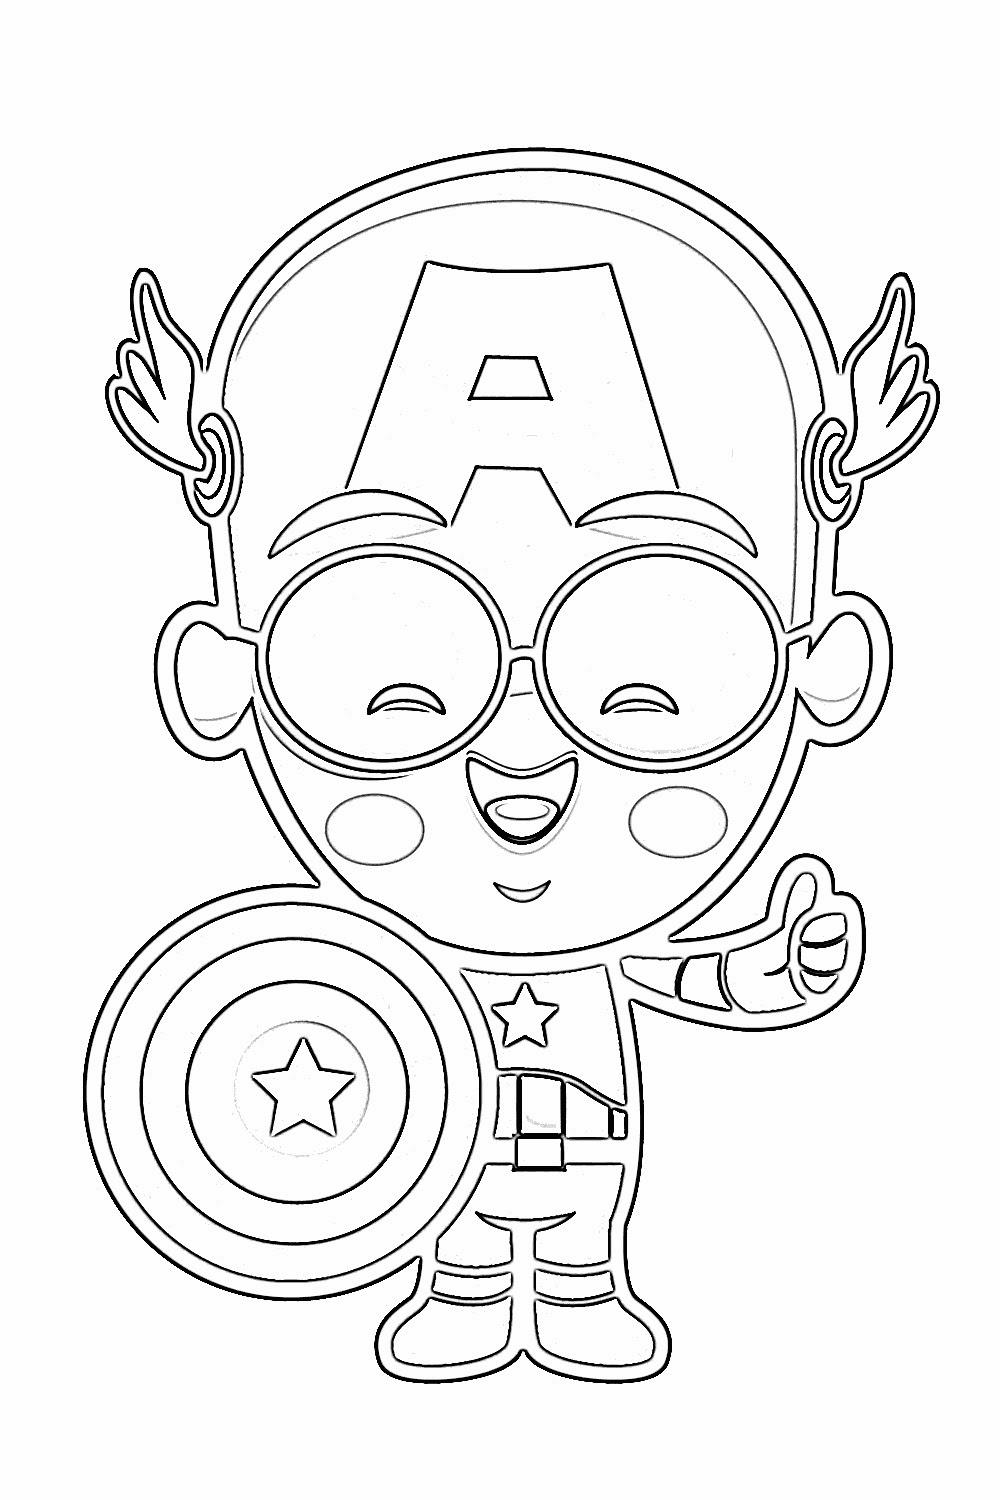 coloring picture avengers craftoholic ultimate avengers coloring pages avengers coloring picture